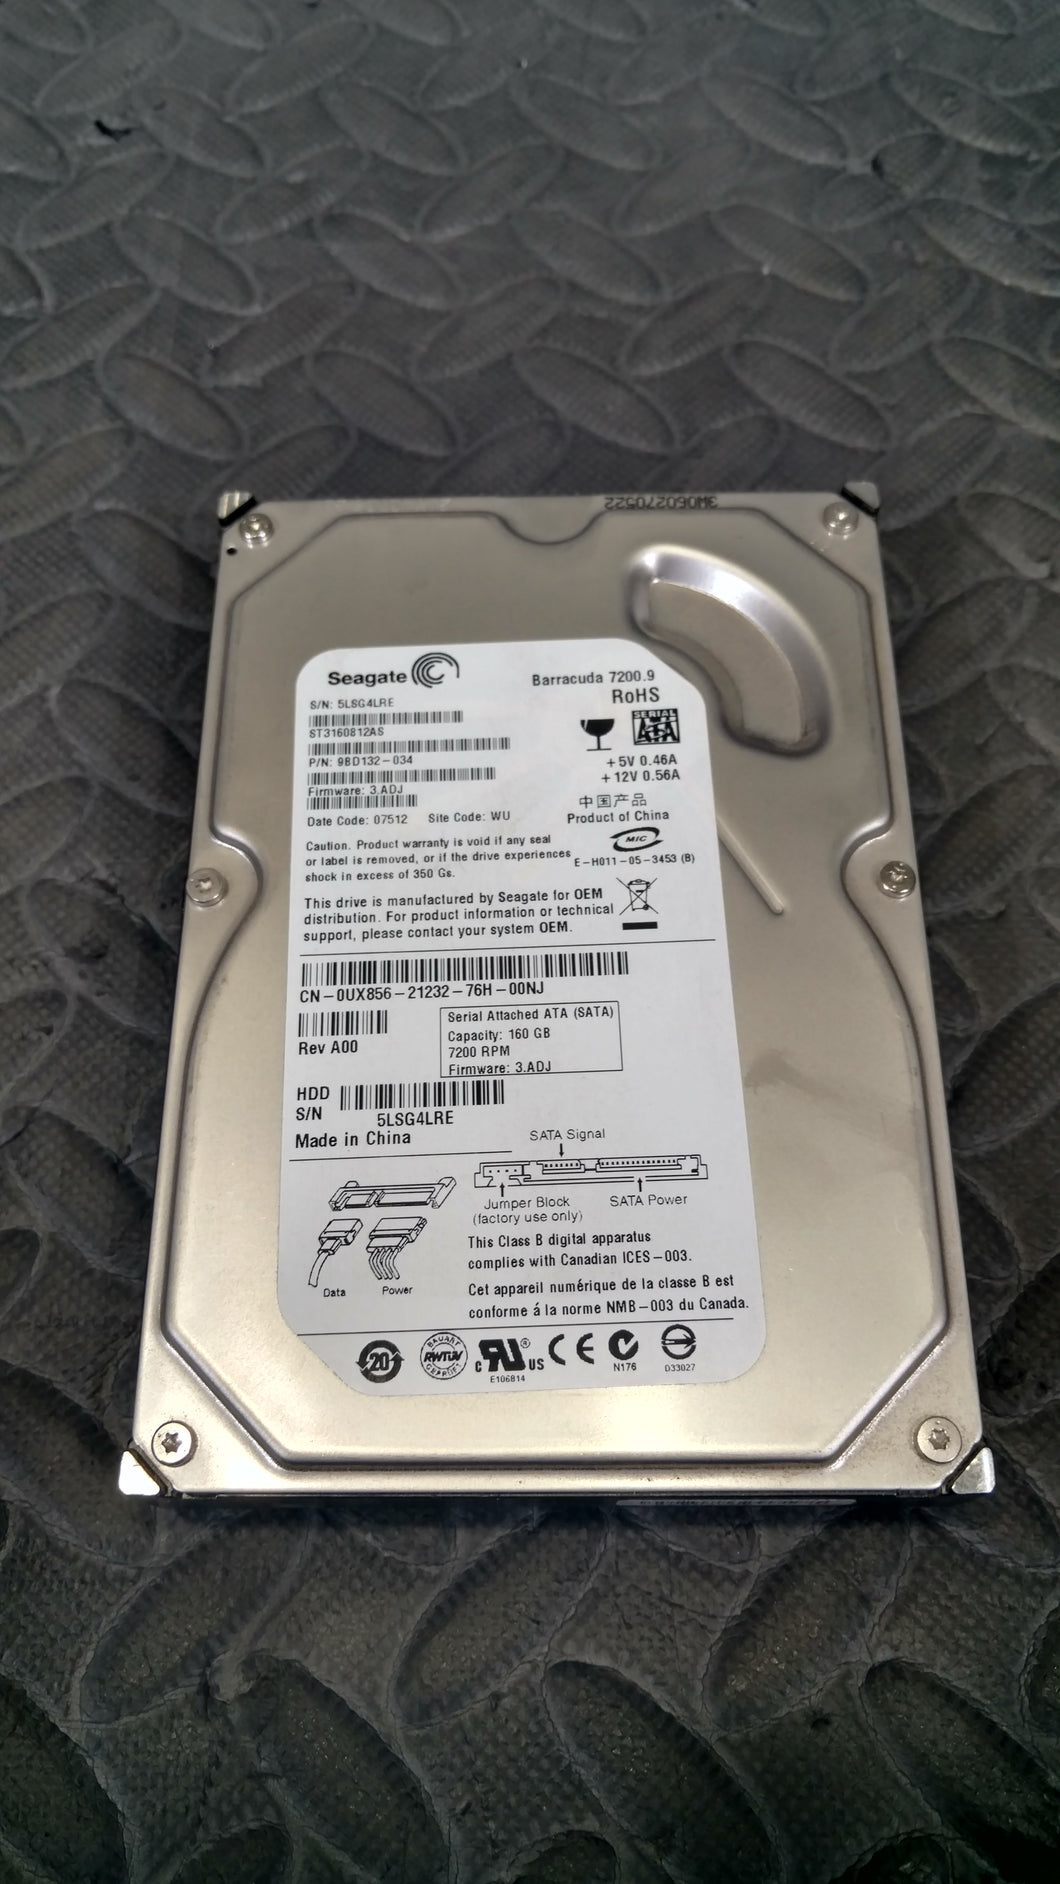 Seagate ST3160812AS 3.5